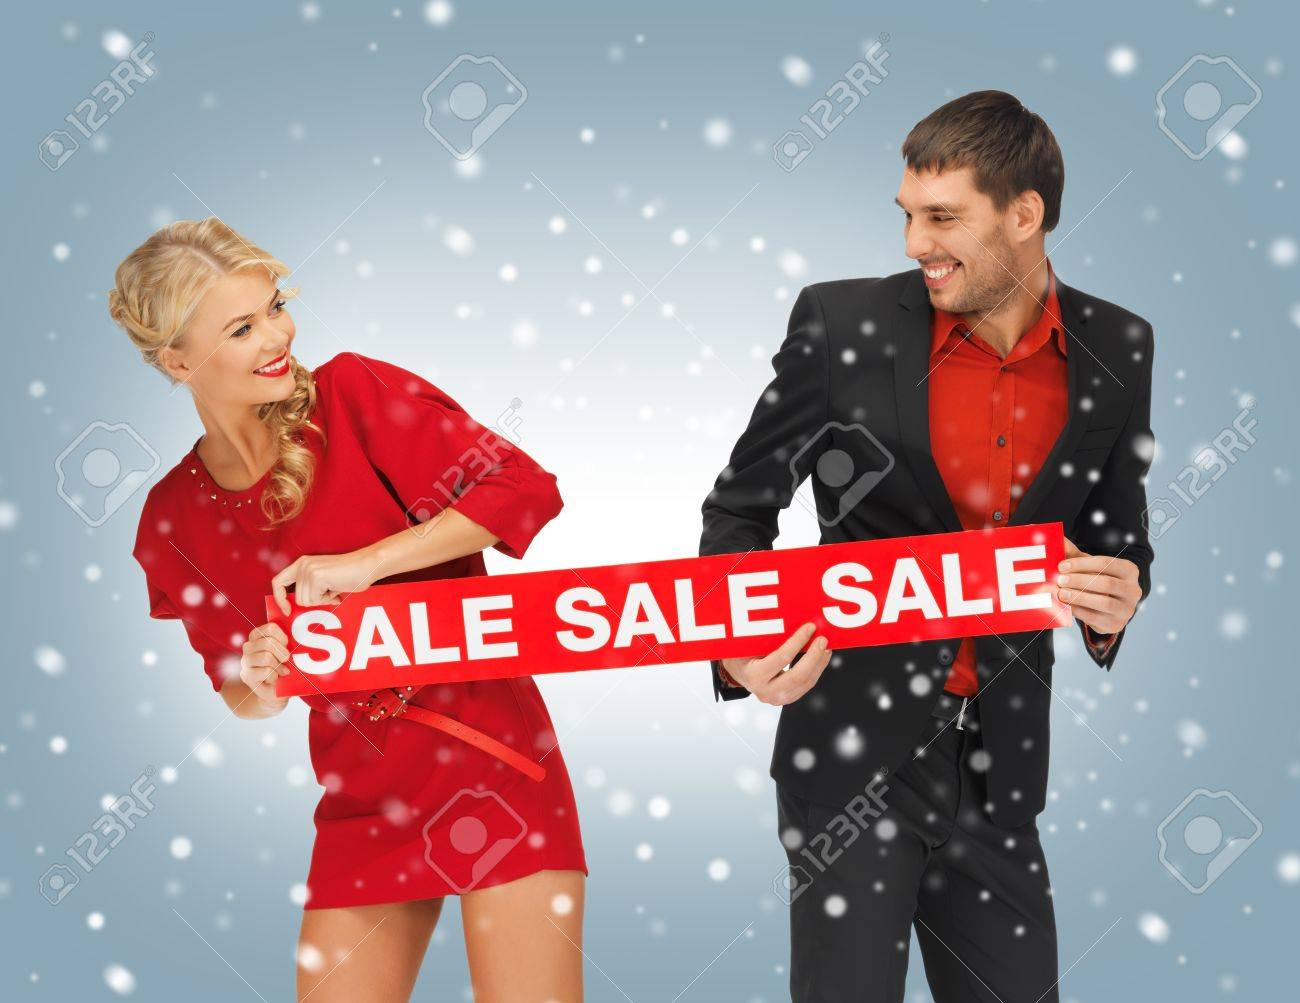 bright picture of man and woman with sale sign Stock Photo - 16471894